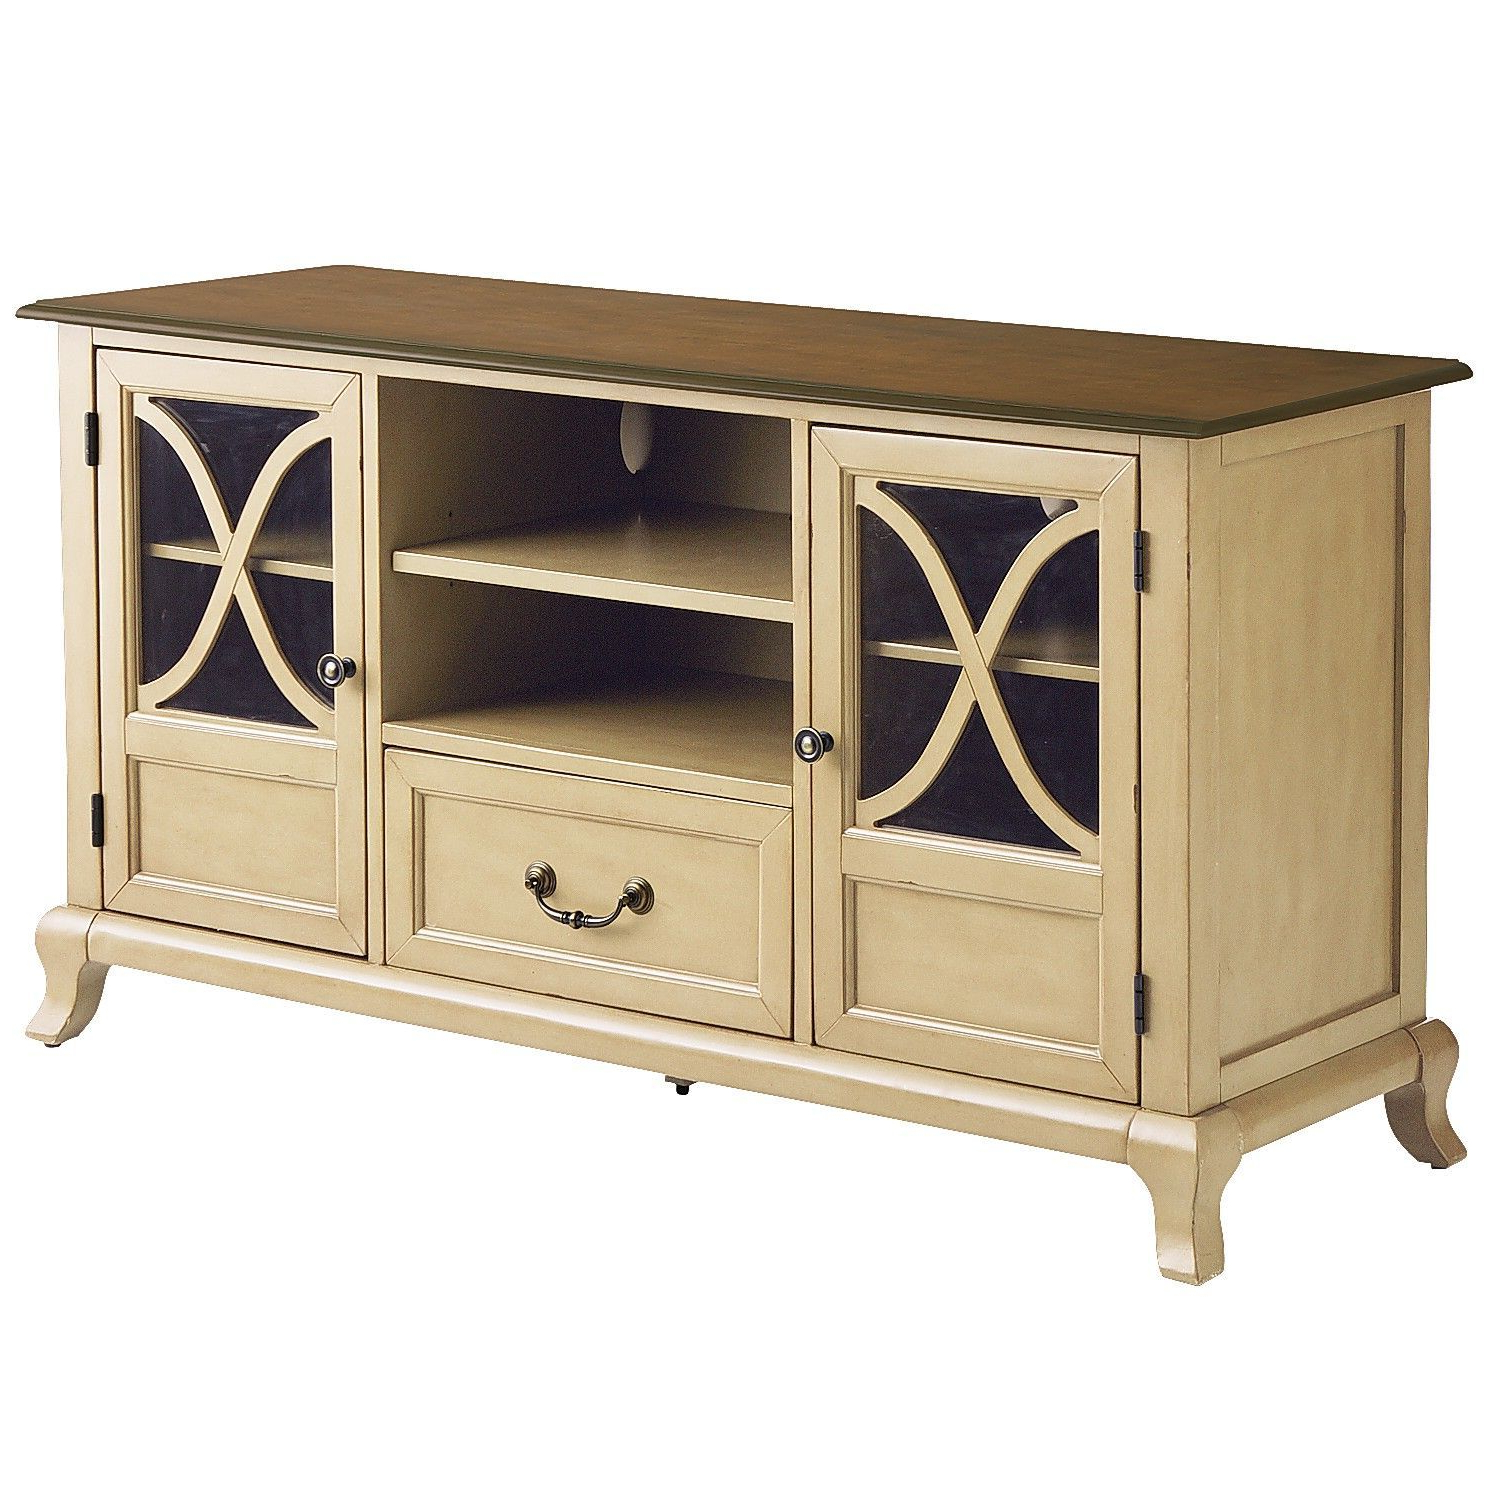 "Marchella Antique Ivory 52"" Tv Stand 